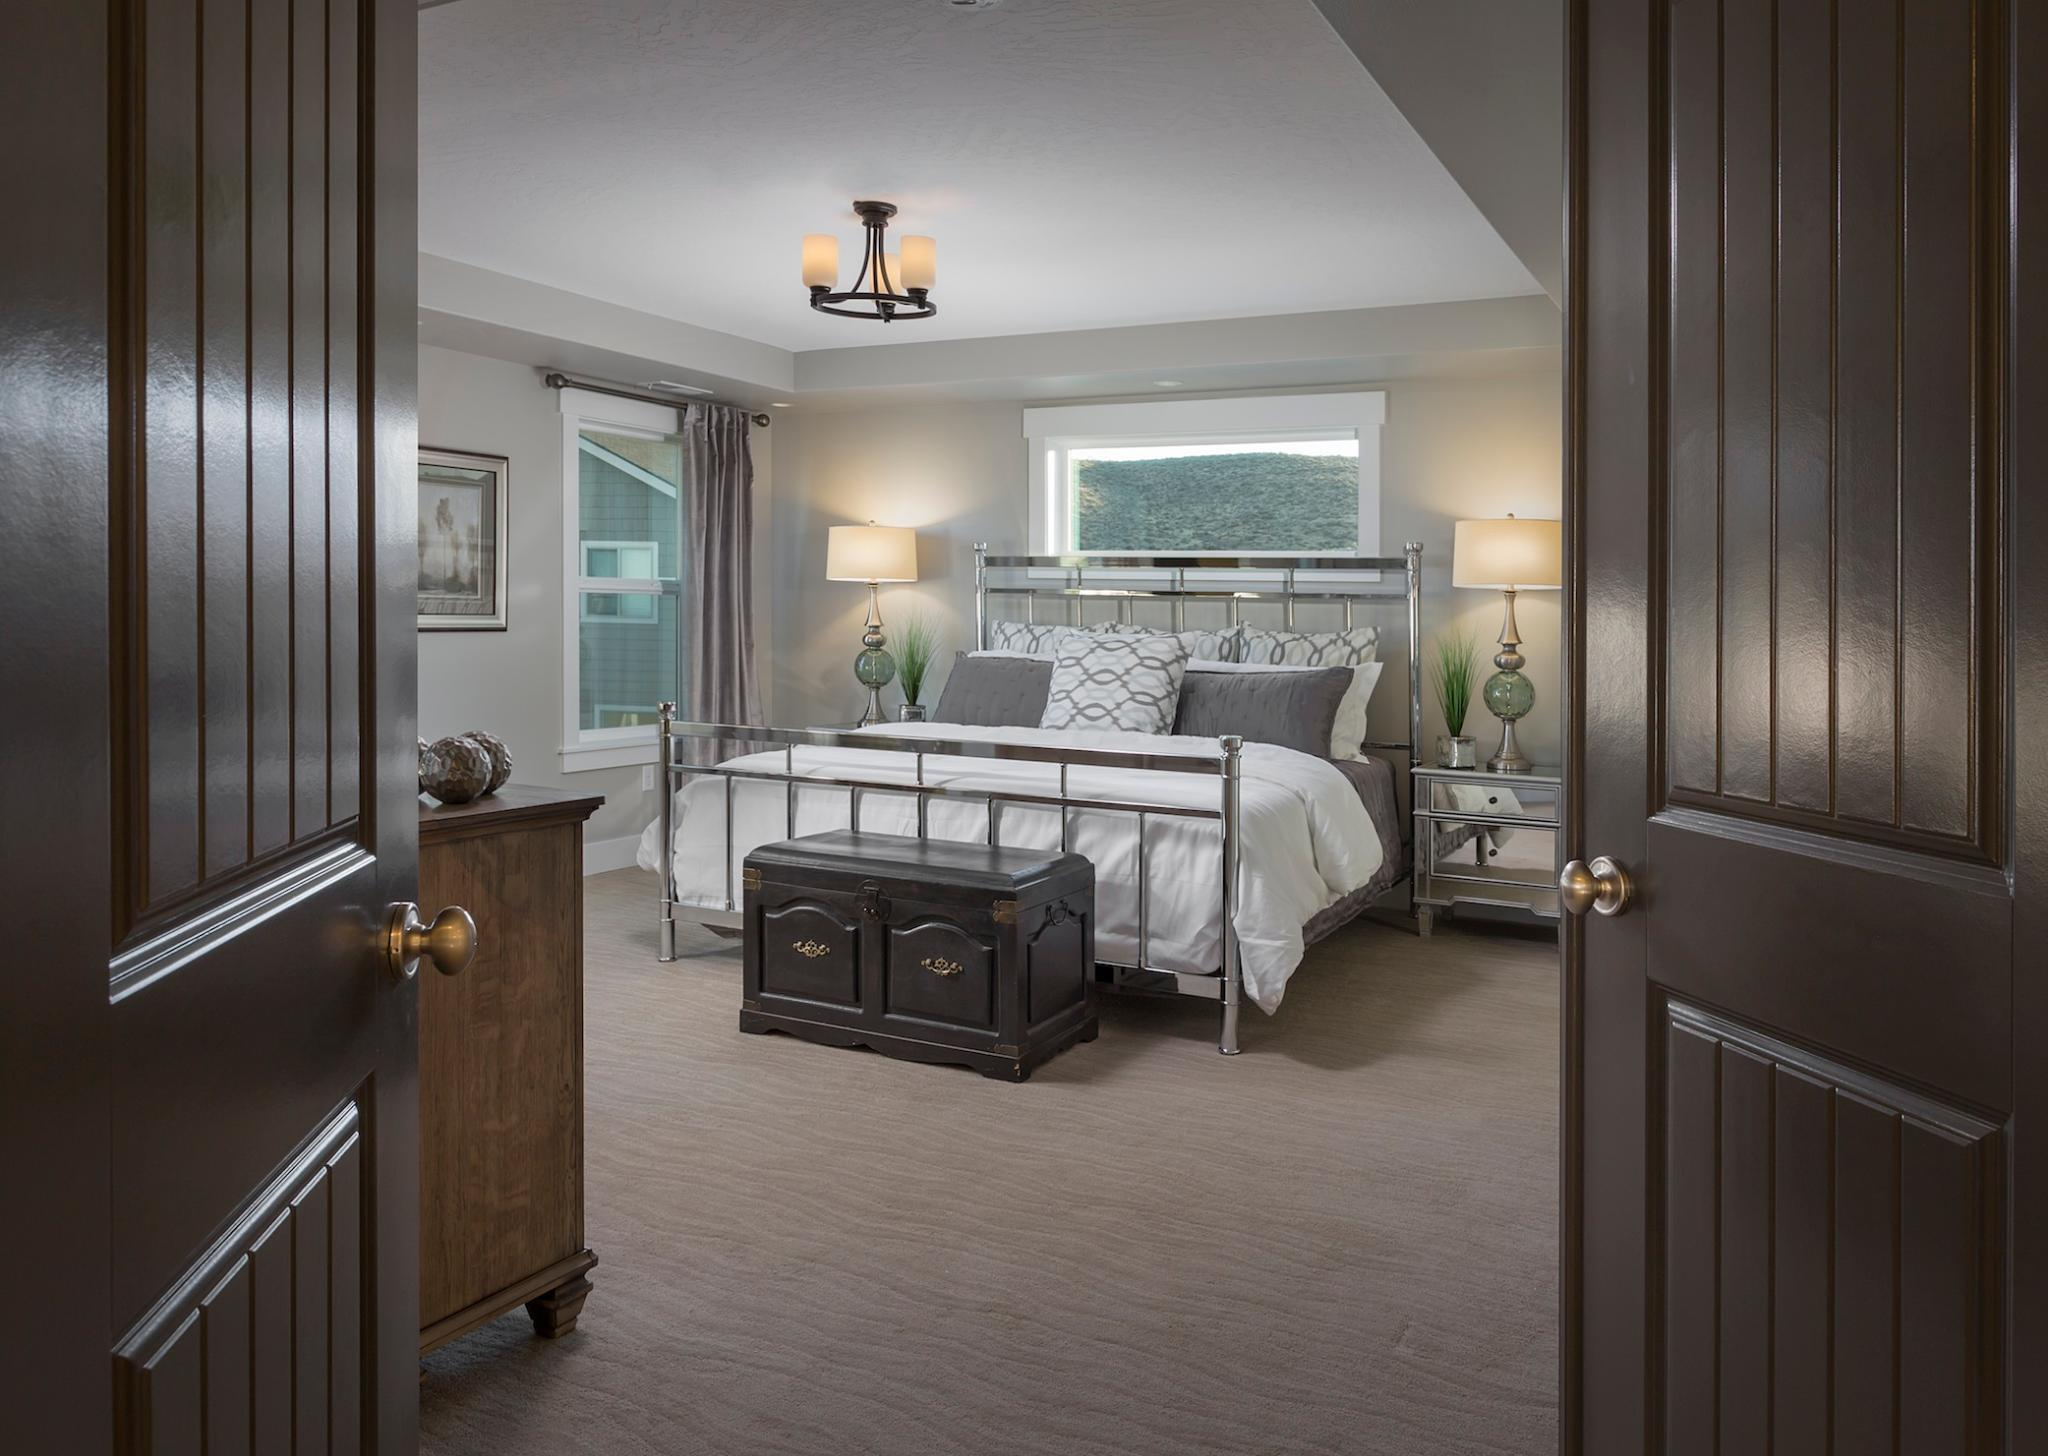 Bedroom featured in the LaCrosse By New Tradition Homes in Richland, WA